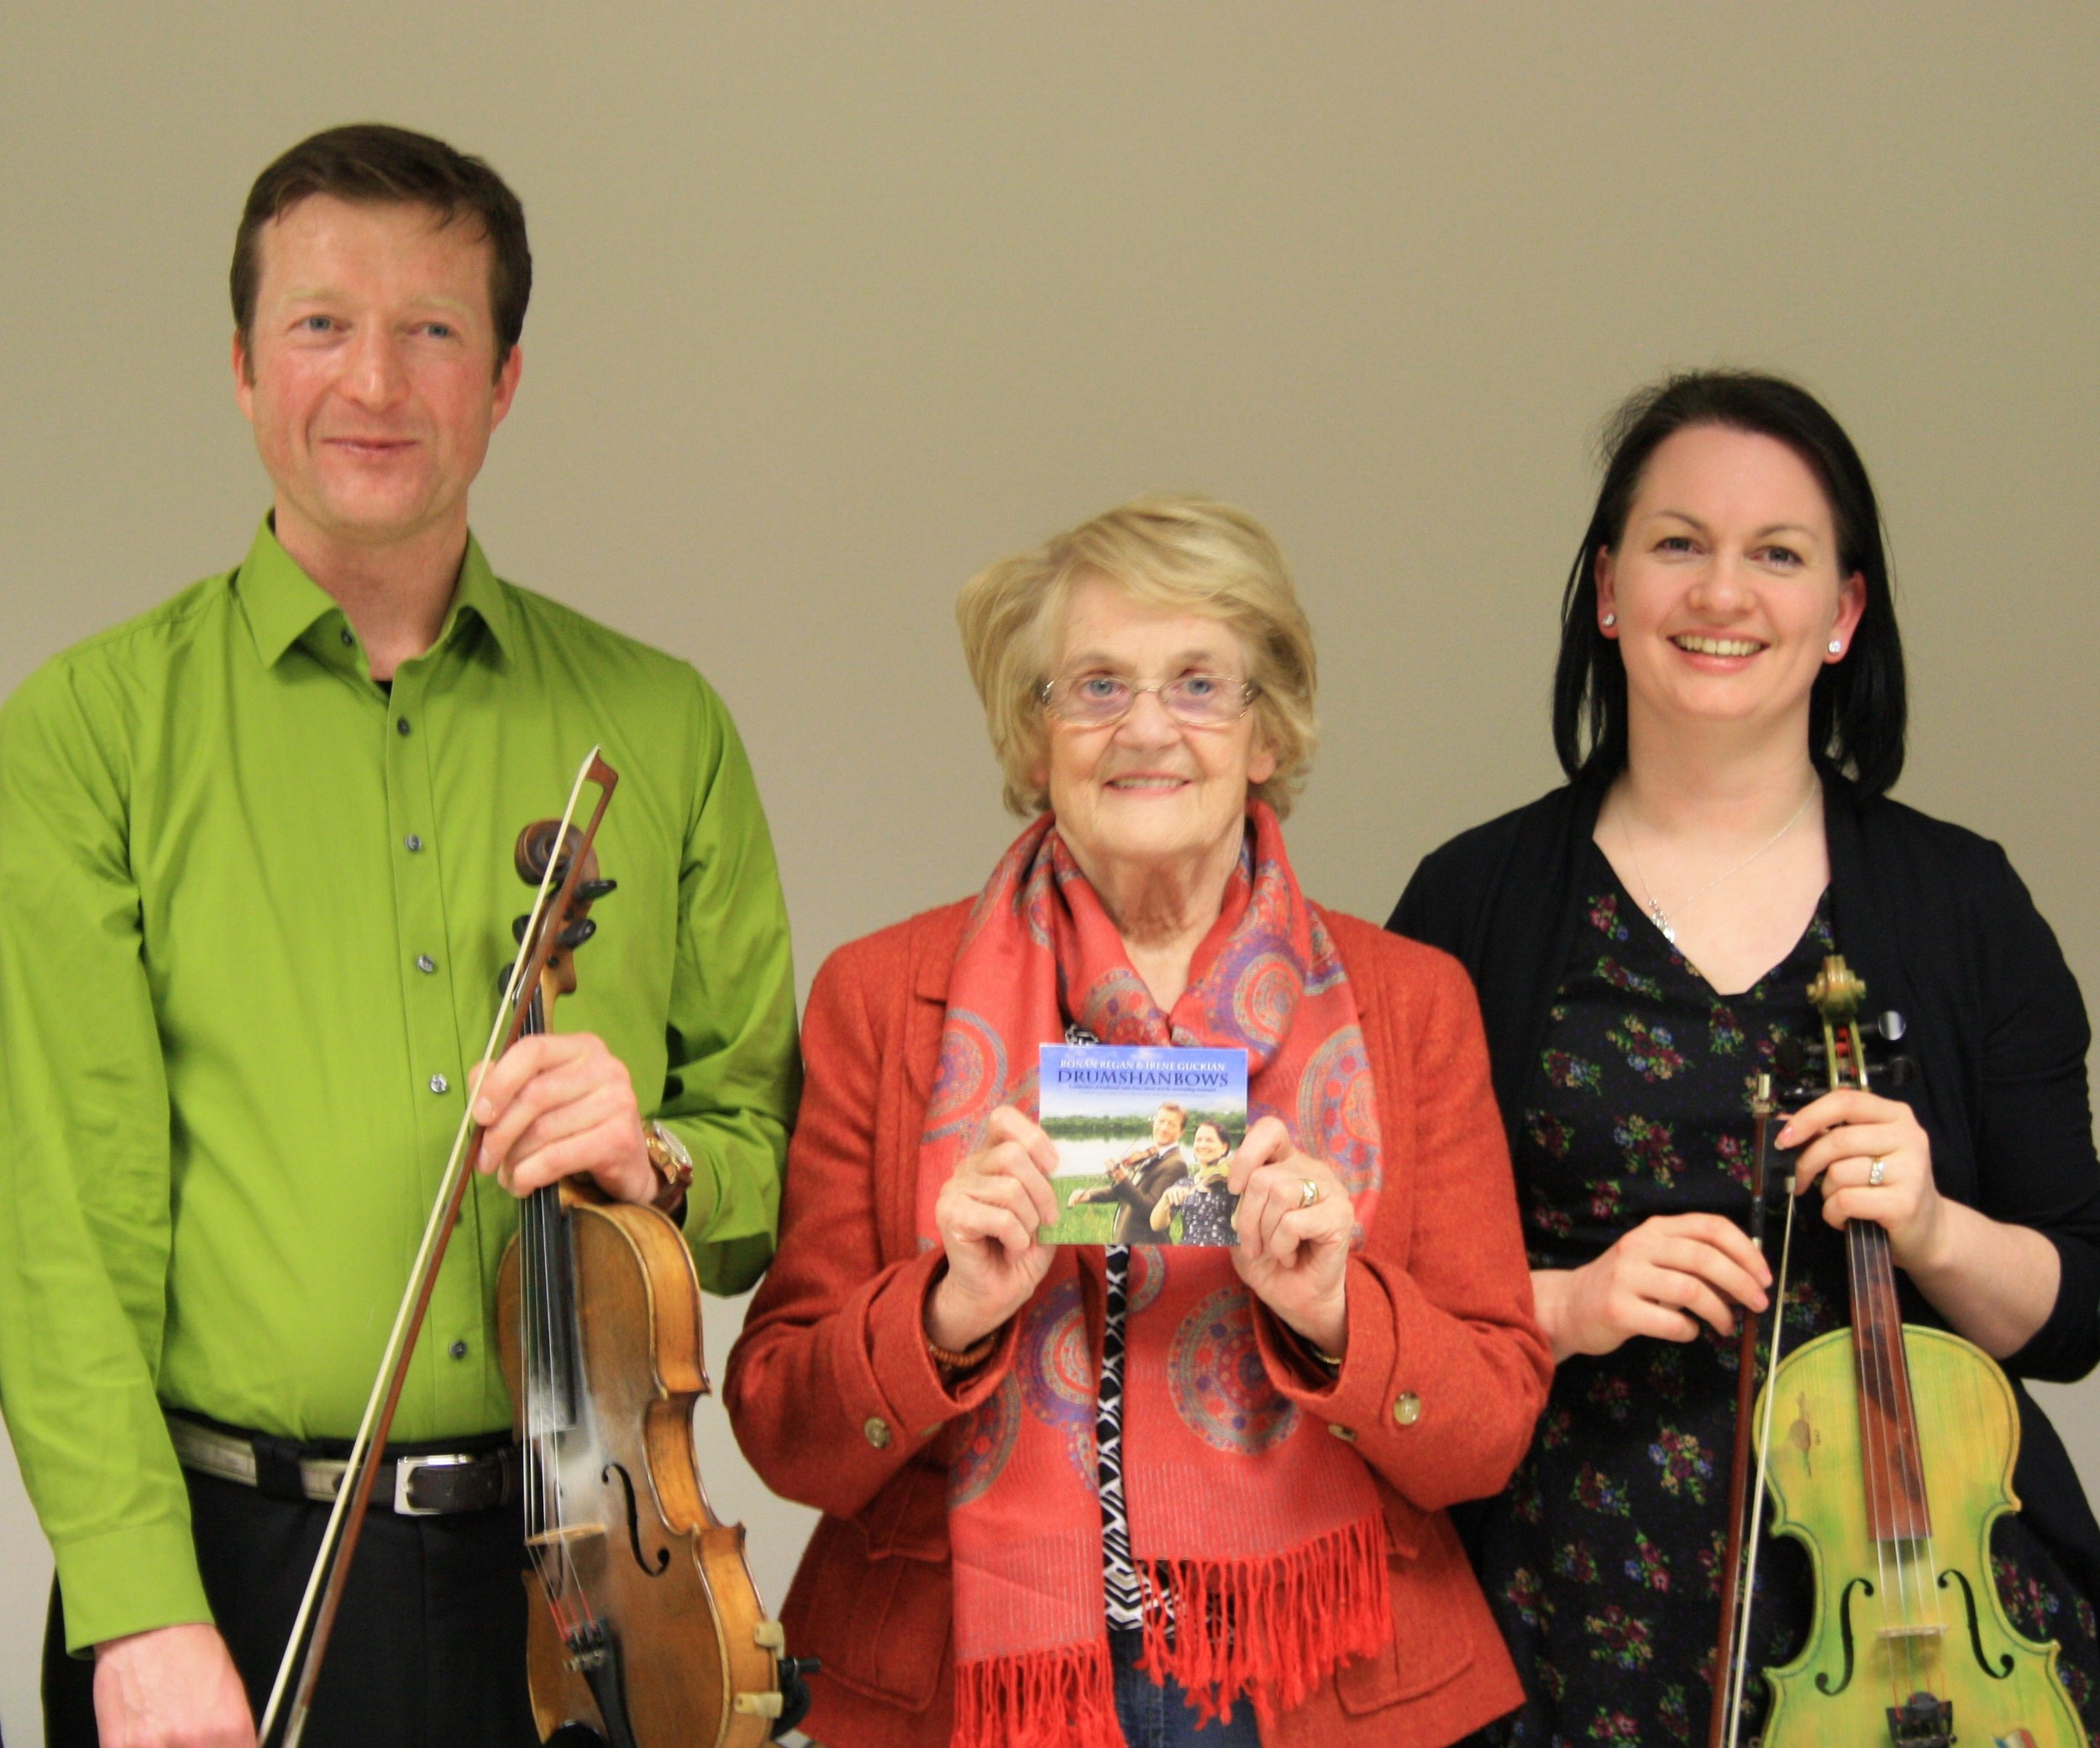 Launch of Drumshanbows by Nancy Woods